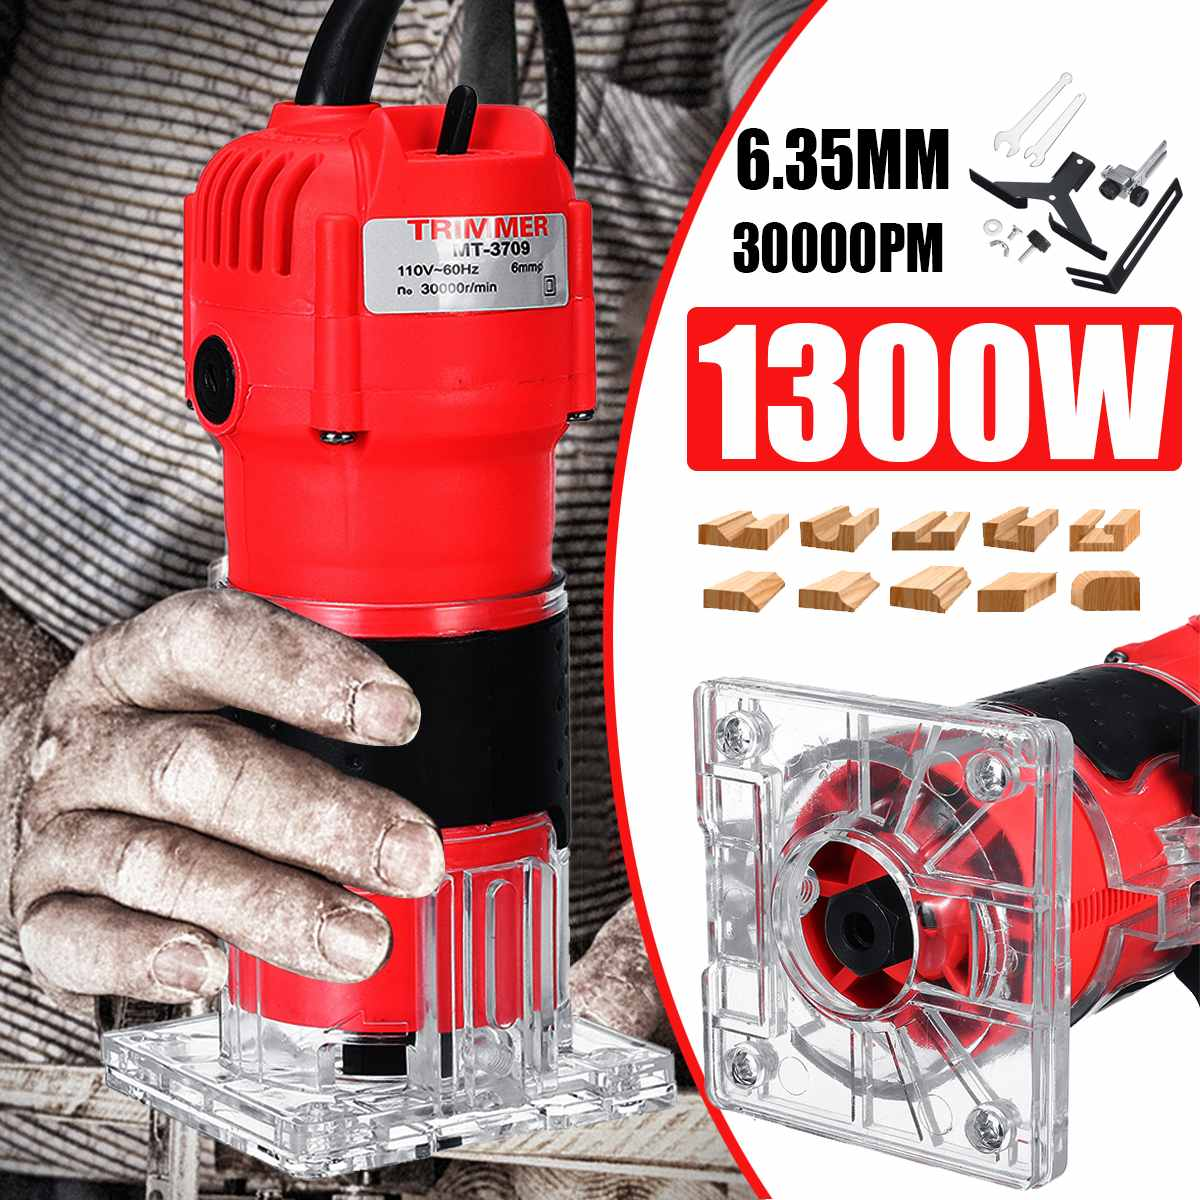 30000RPM1300W 6.35mm Electric Hand Trimmer Wood Laminate Palms Wood Router Joiners Hand Woodworking Carving Machine 220V 110V30000RPM1300W 6.35mm Electric Hand Trimmer Wood Laminate Palms Wood Router Joiners Hand Woodworking Carving Machine 220V 110V